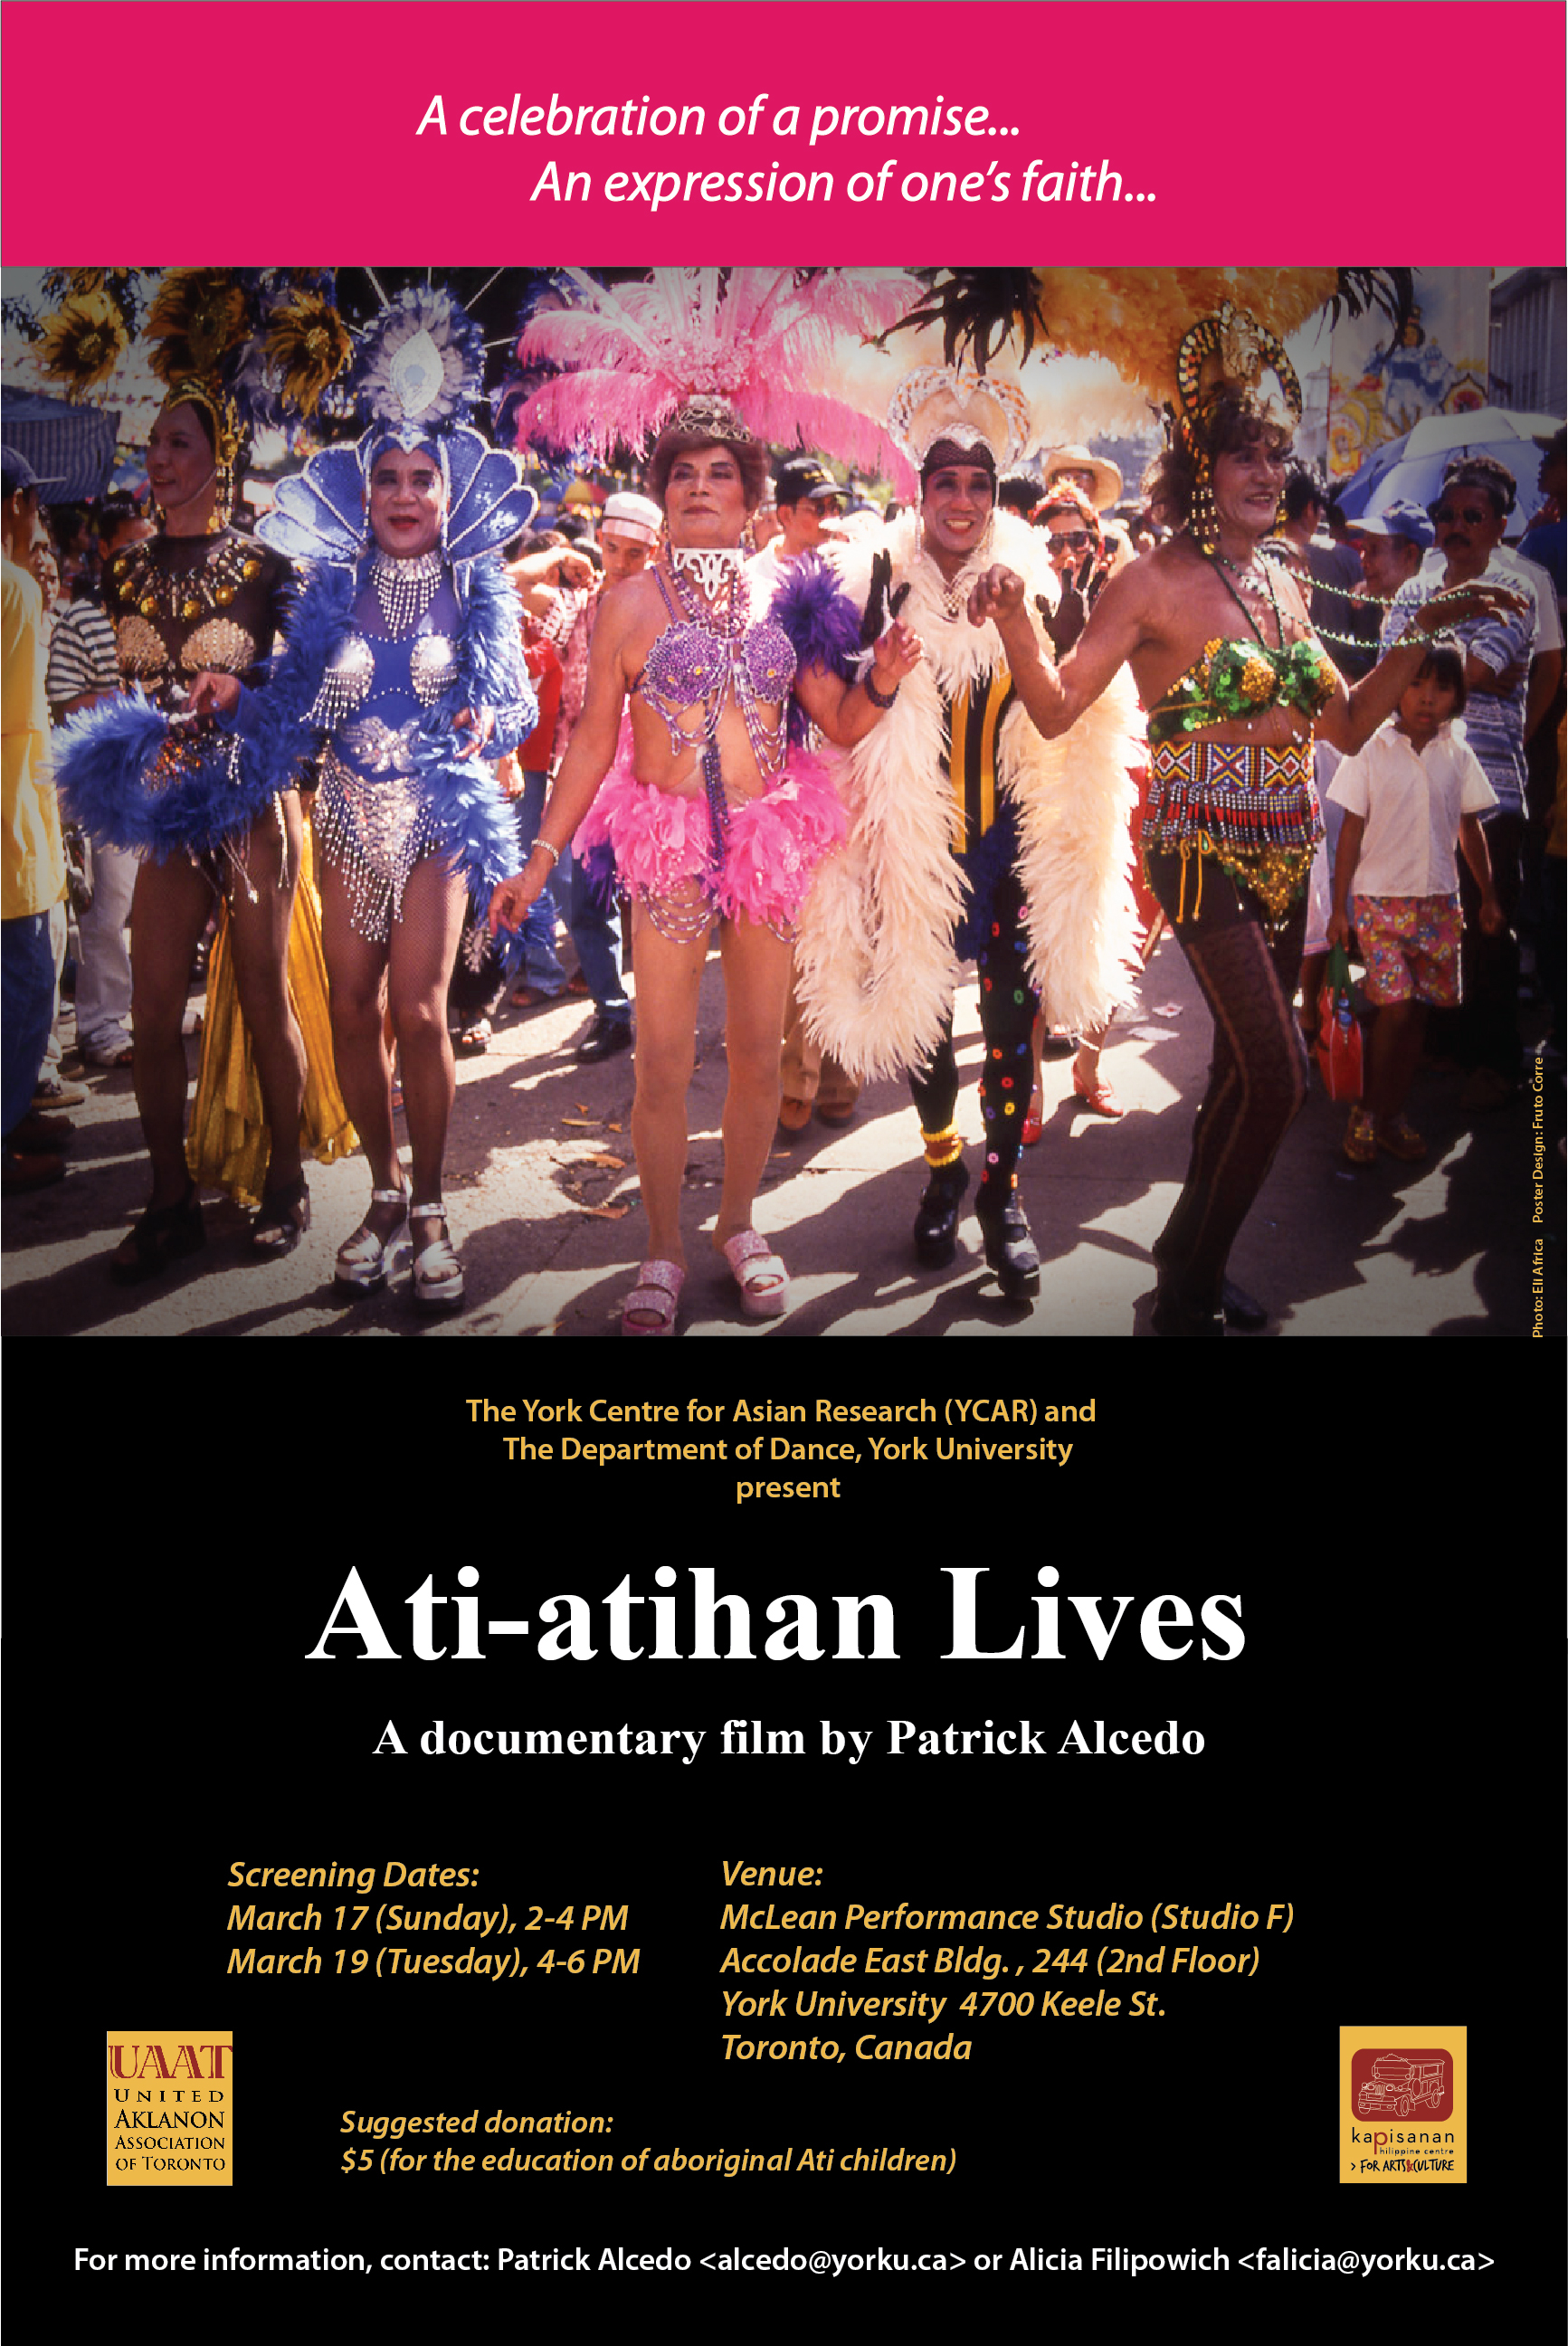 Poster for the documentary film, Ati-atihan Lives by Patrick Alcedo